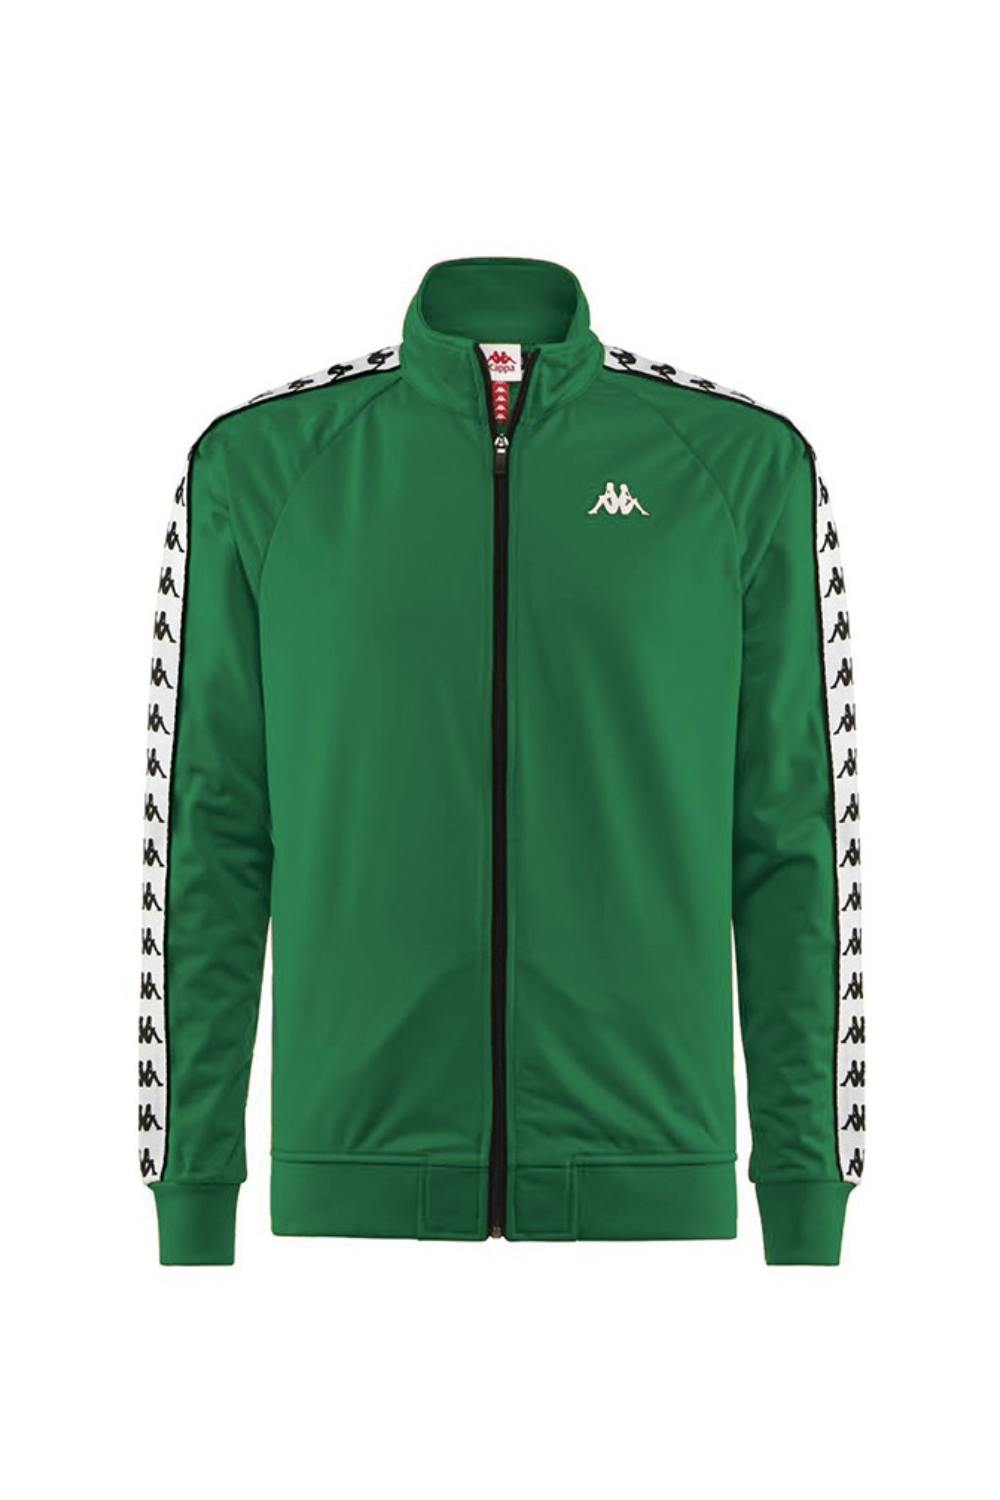 Kappa Banda Anniston Track Top - Green/White/Black